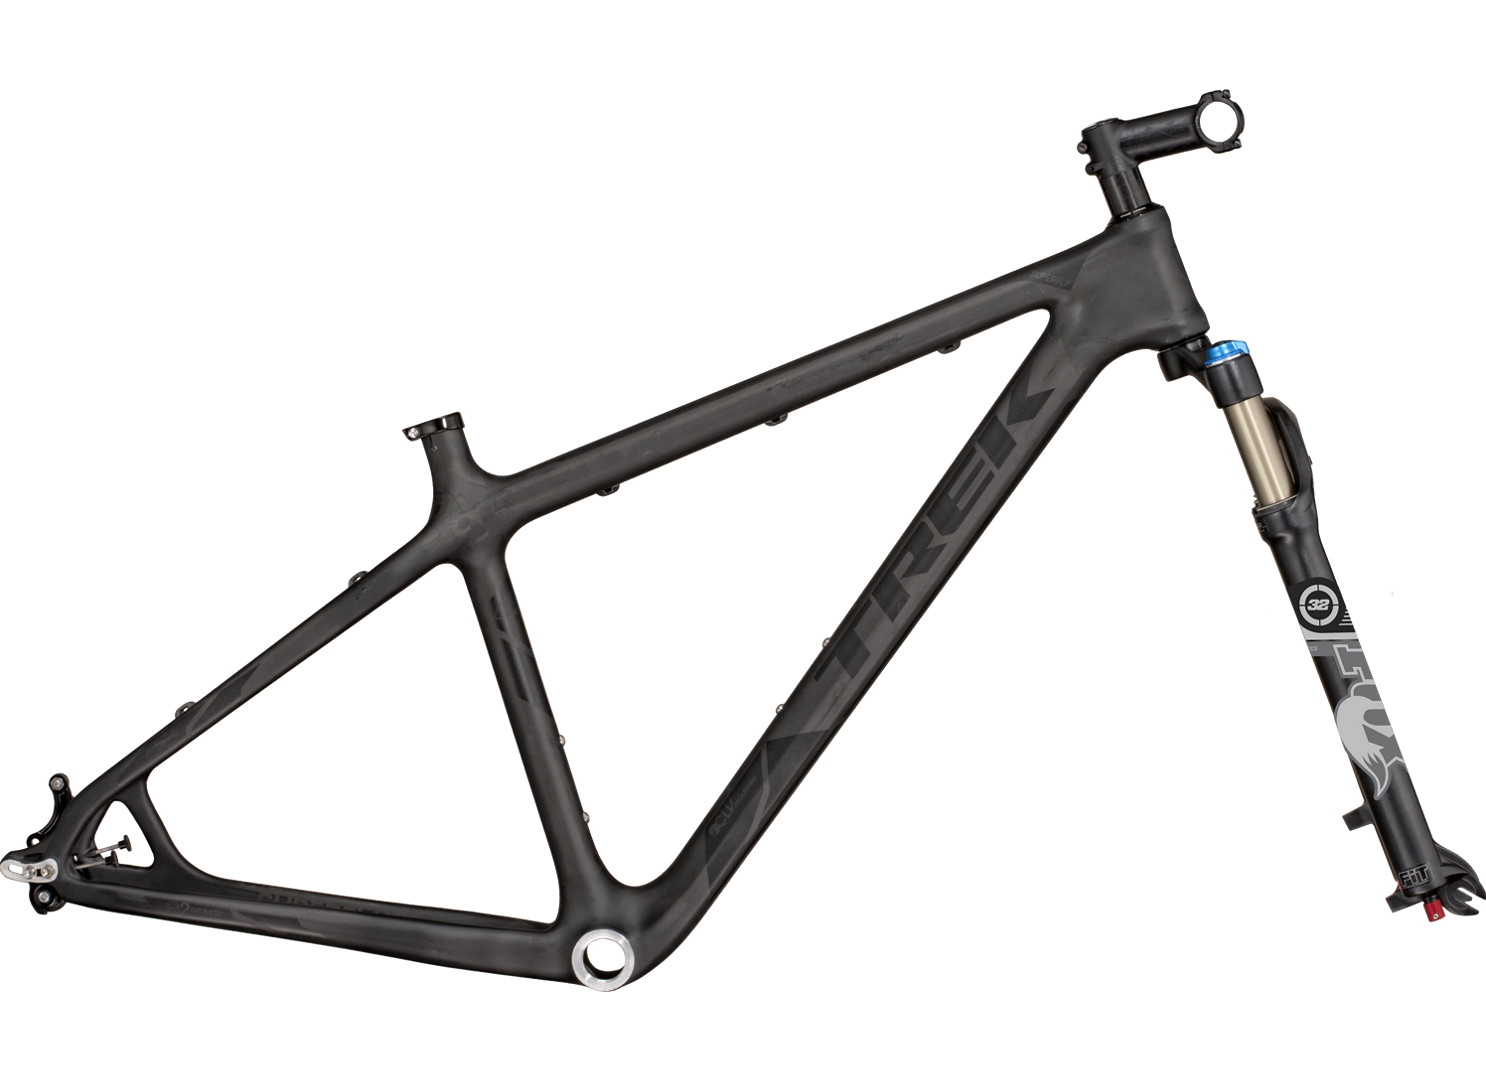 Trek Superfly Ss Frame Reviews Comparisons Specs